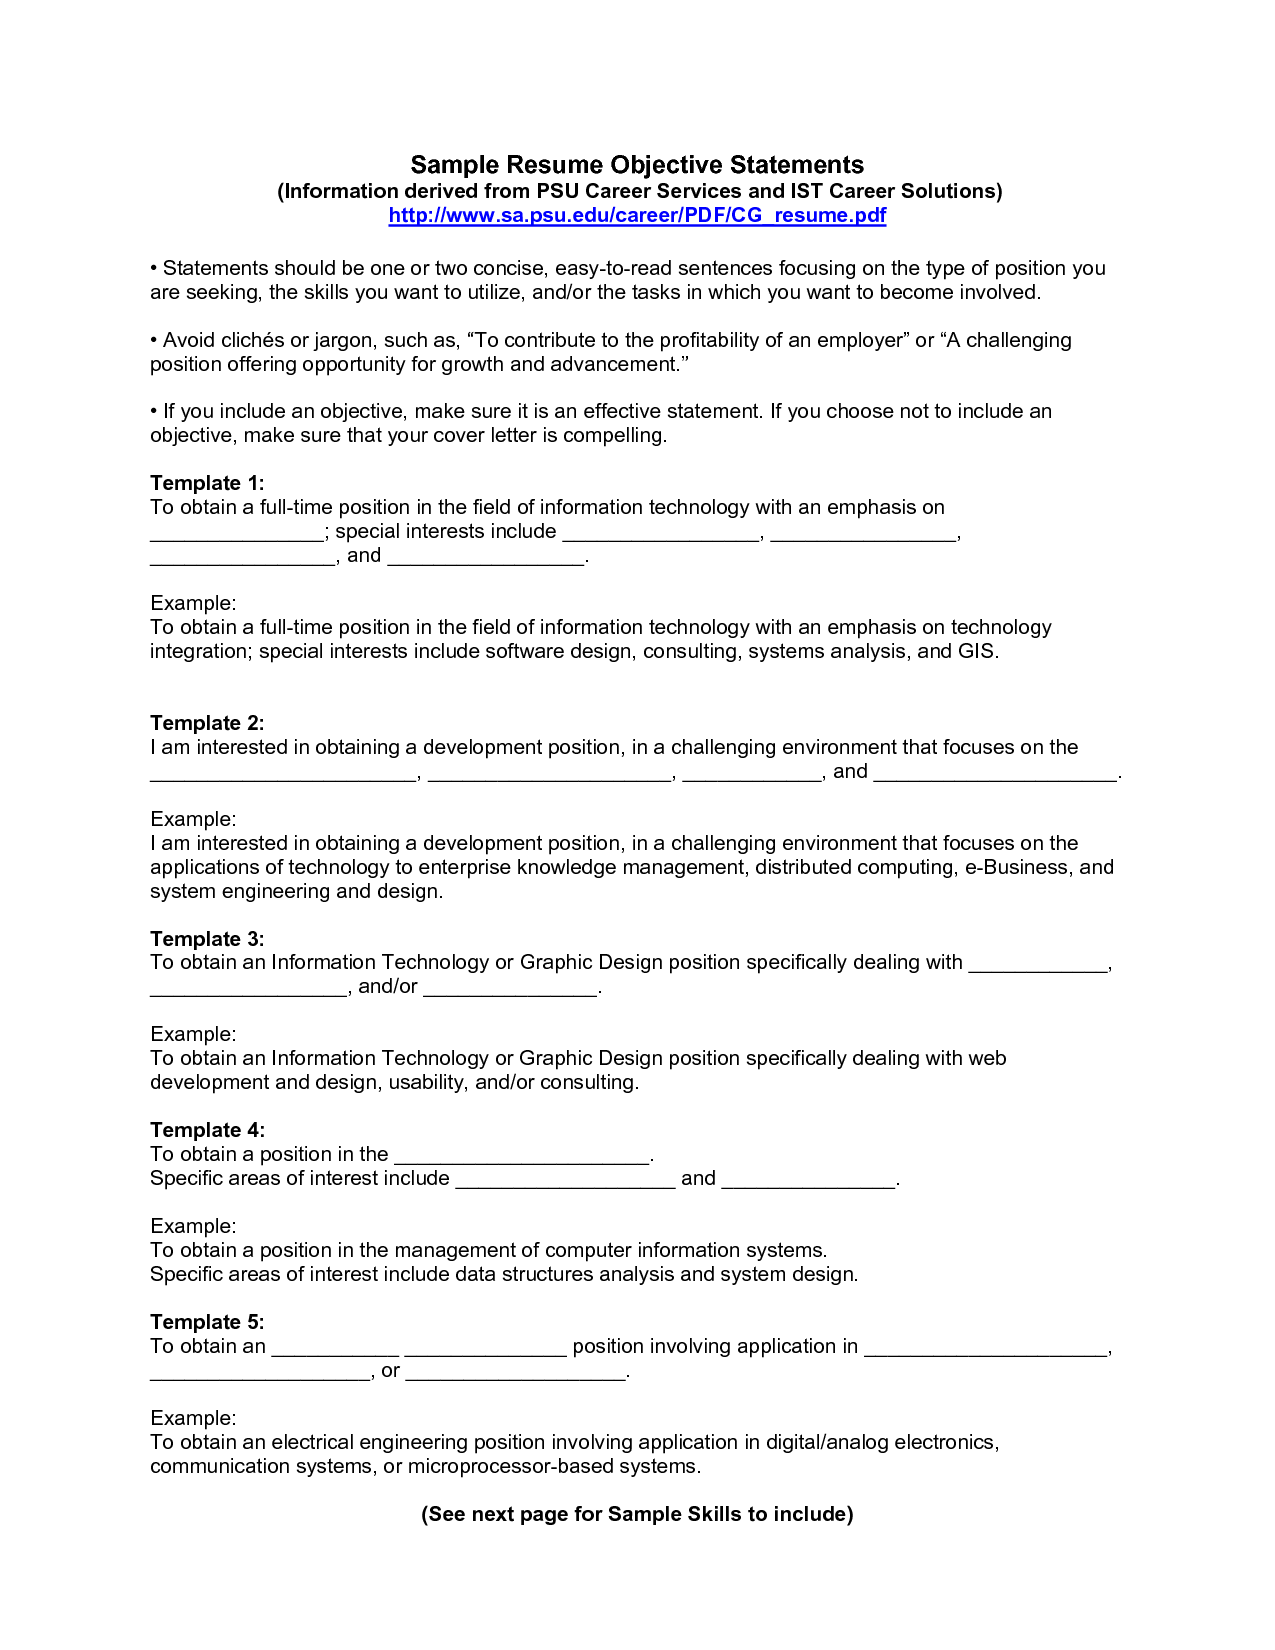 Resume Template Job Objective Examples Career Resumes Within For Resume  Examples Objective Samples Resume Objective Samples  Objective On A Resume Examples